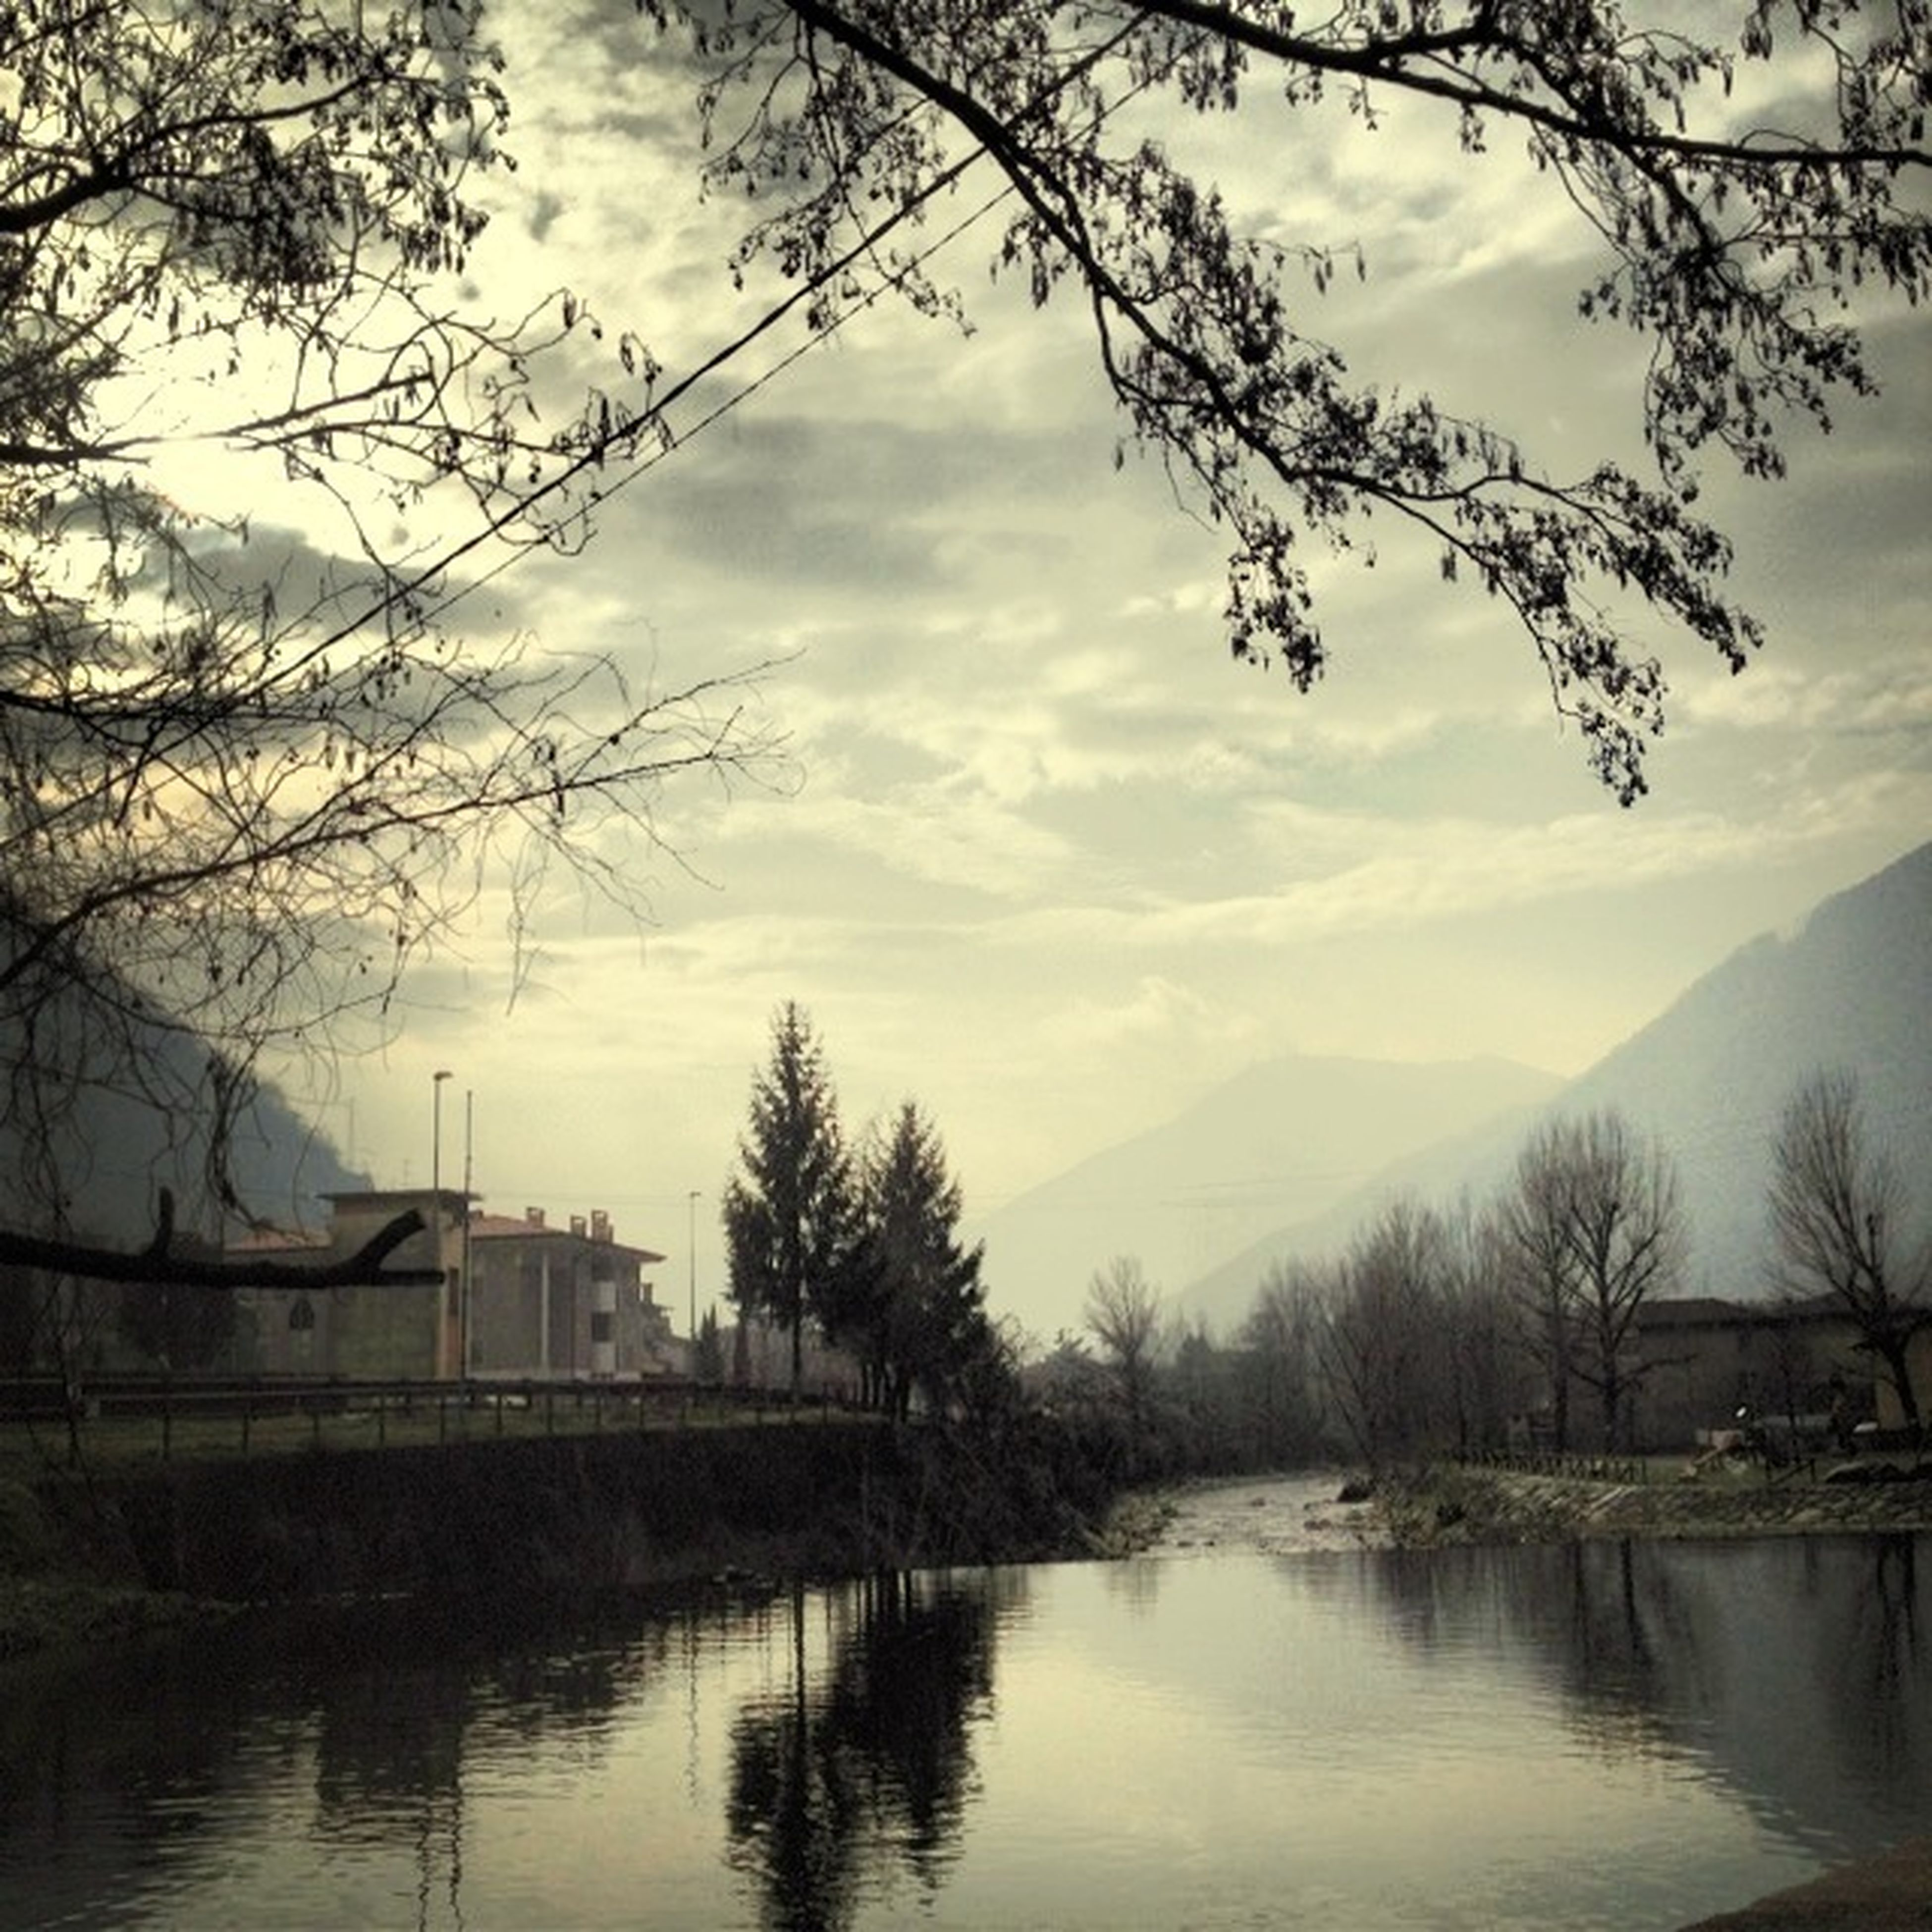 water, sky, tree, lake, cloud - sky, waterfront, bare tree, built structure, reflection, cloud, tranquility, building exterior, river, tranquil scene, architecture, scenics, nature, beauty in nature, cloudy, branch